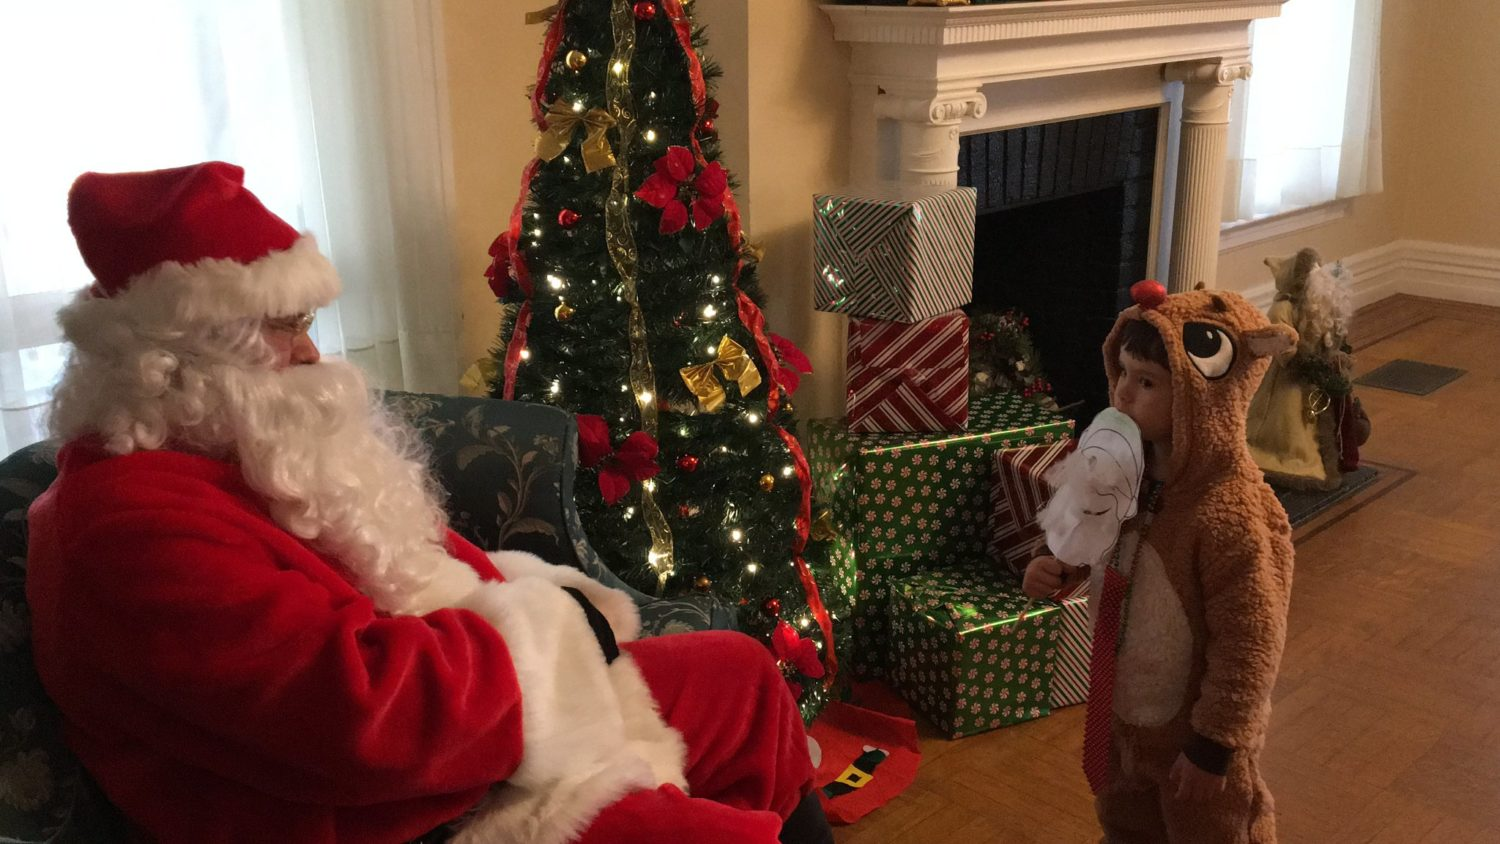 santa-with-child-in-reindeer-costume